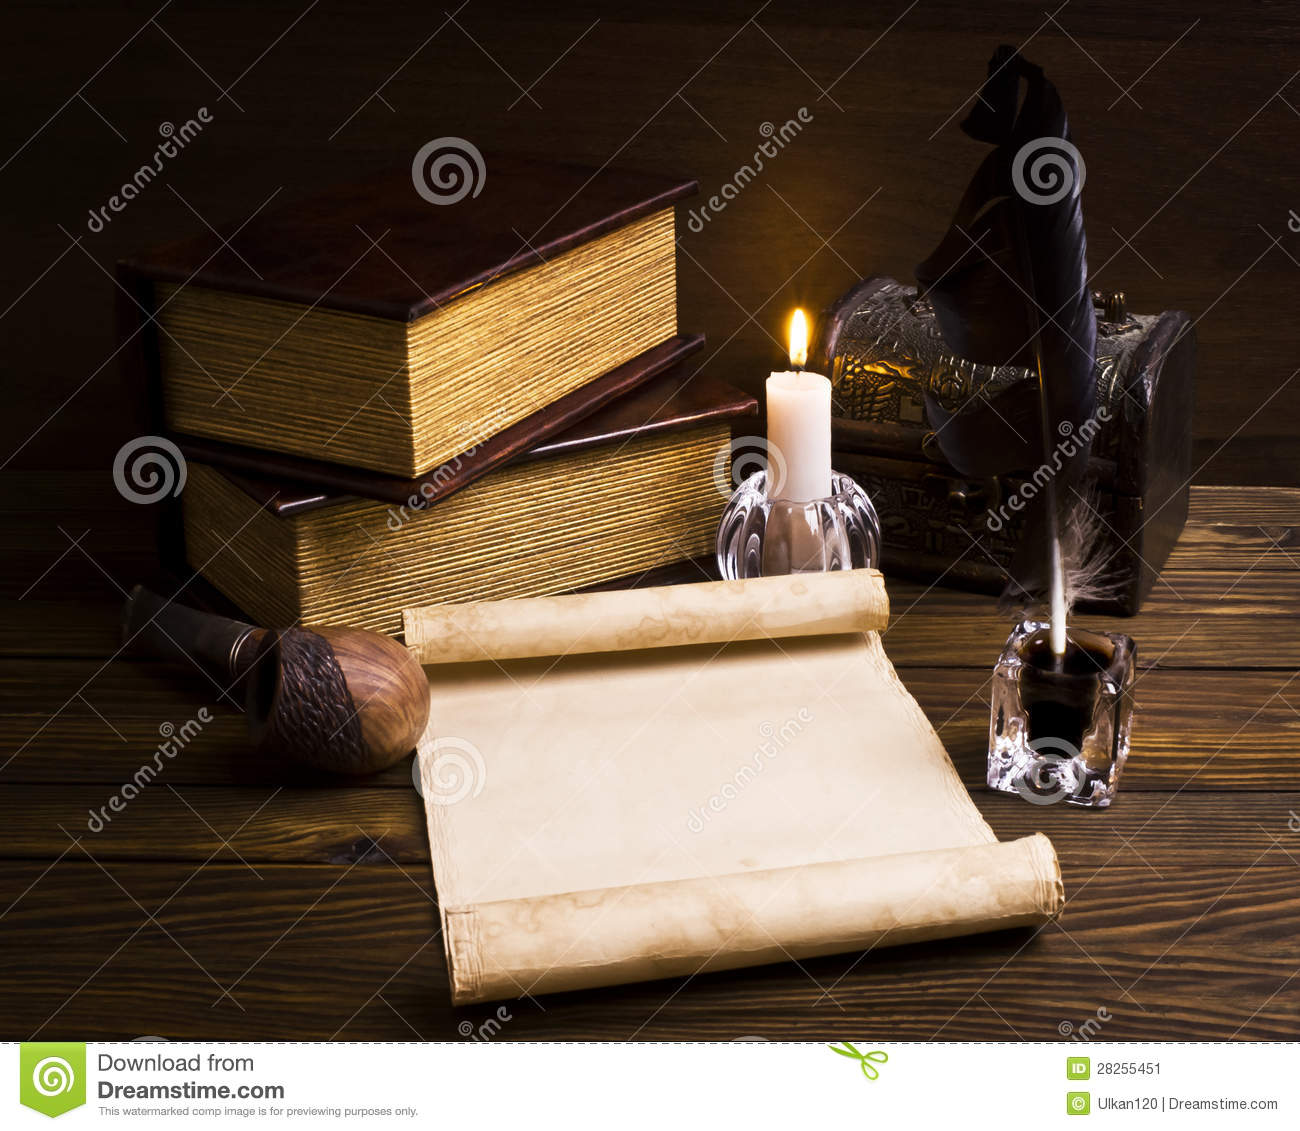 Old papers and books on a wooden table